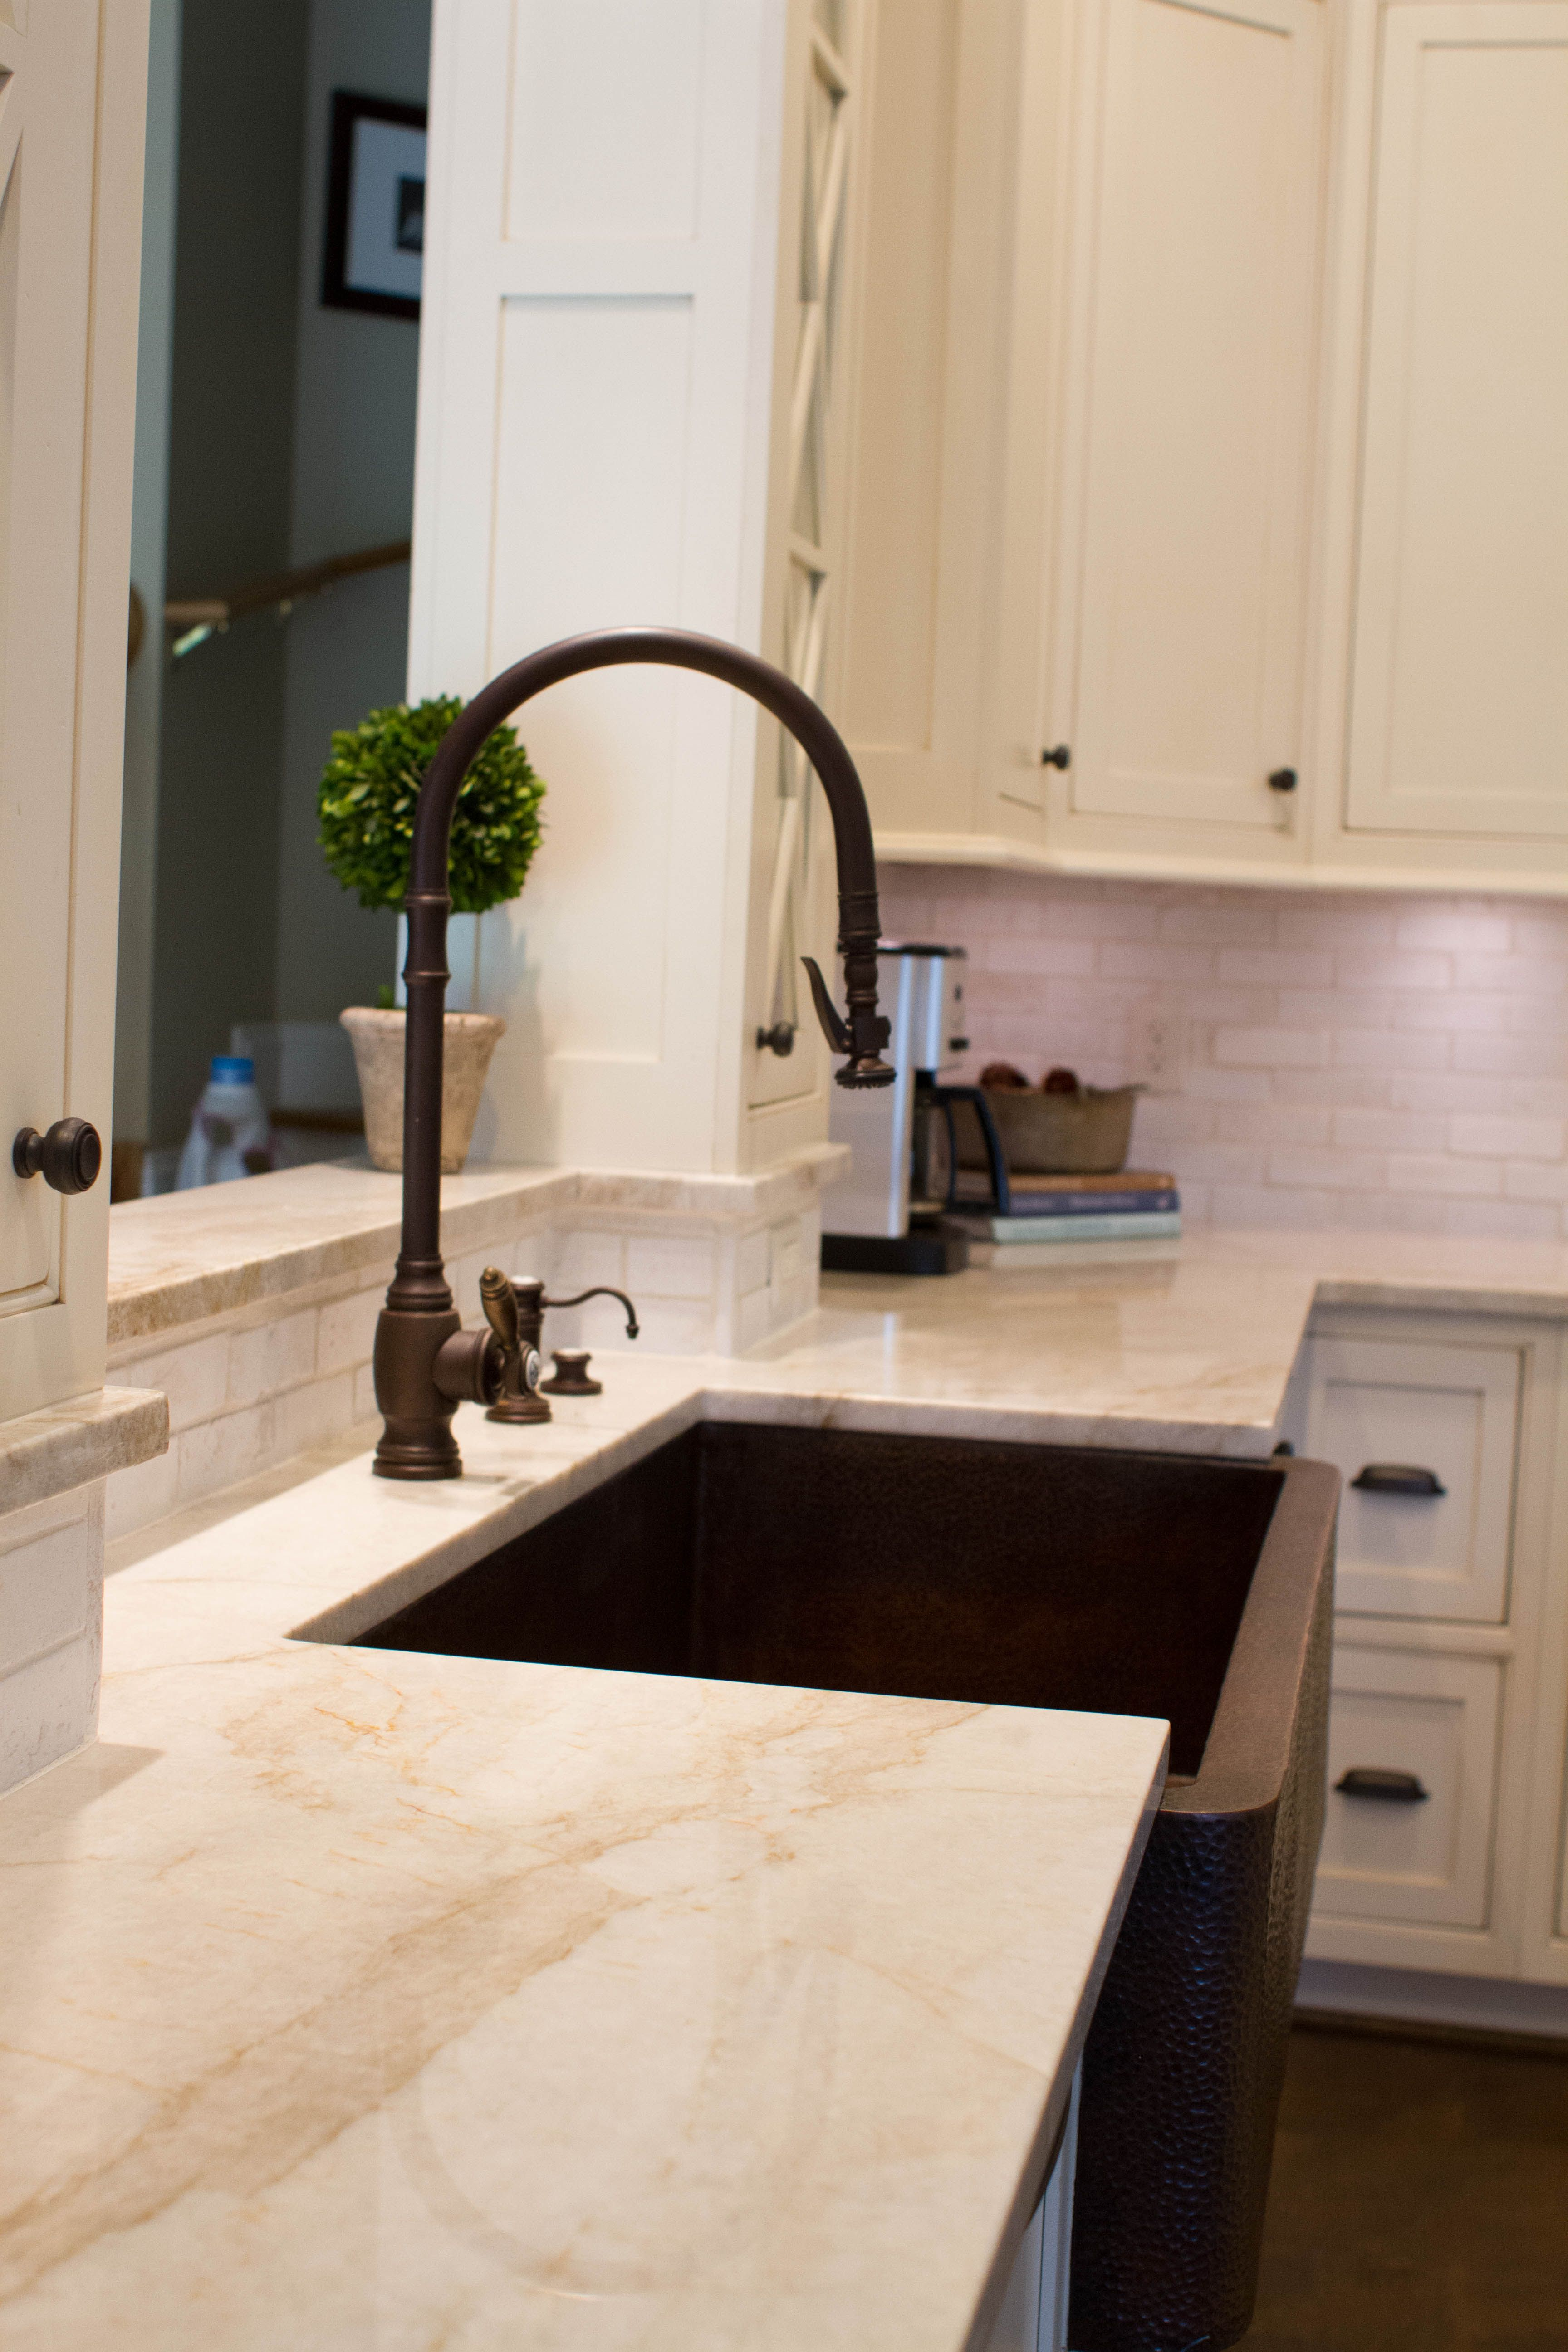 Waterstone 5500 3 Plp Extended Reach Pulldown Kitchen Faucet With